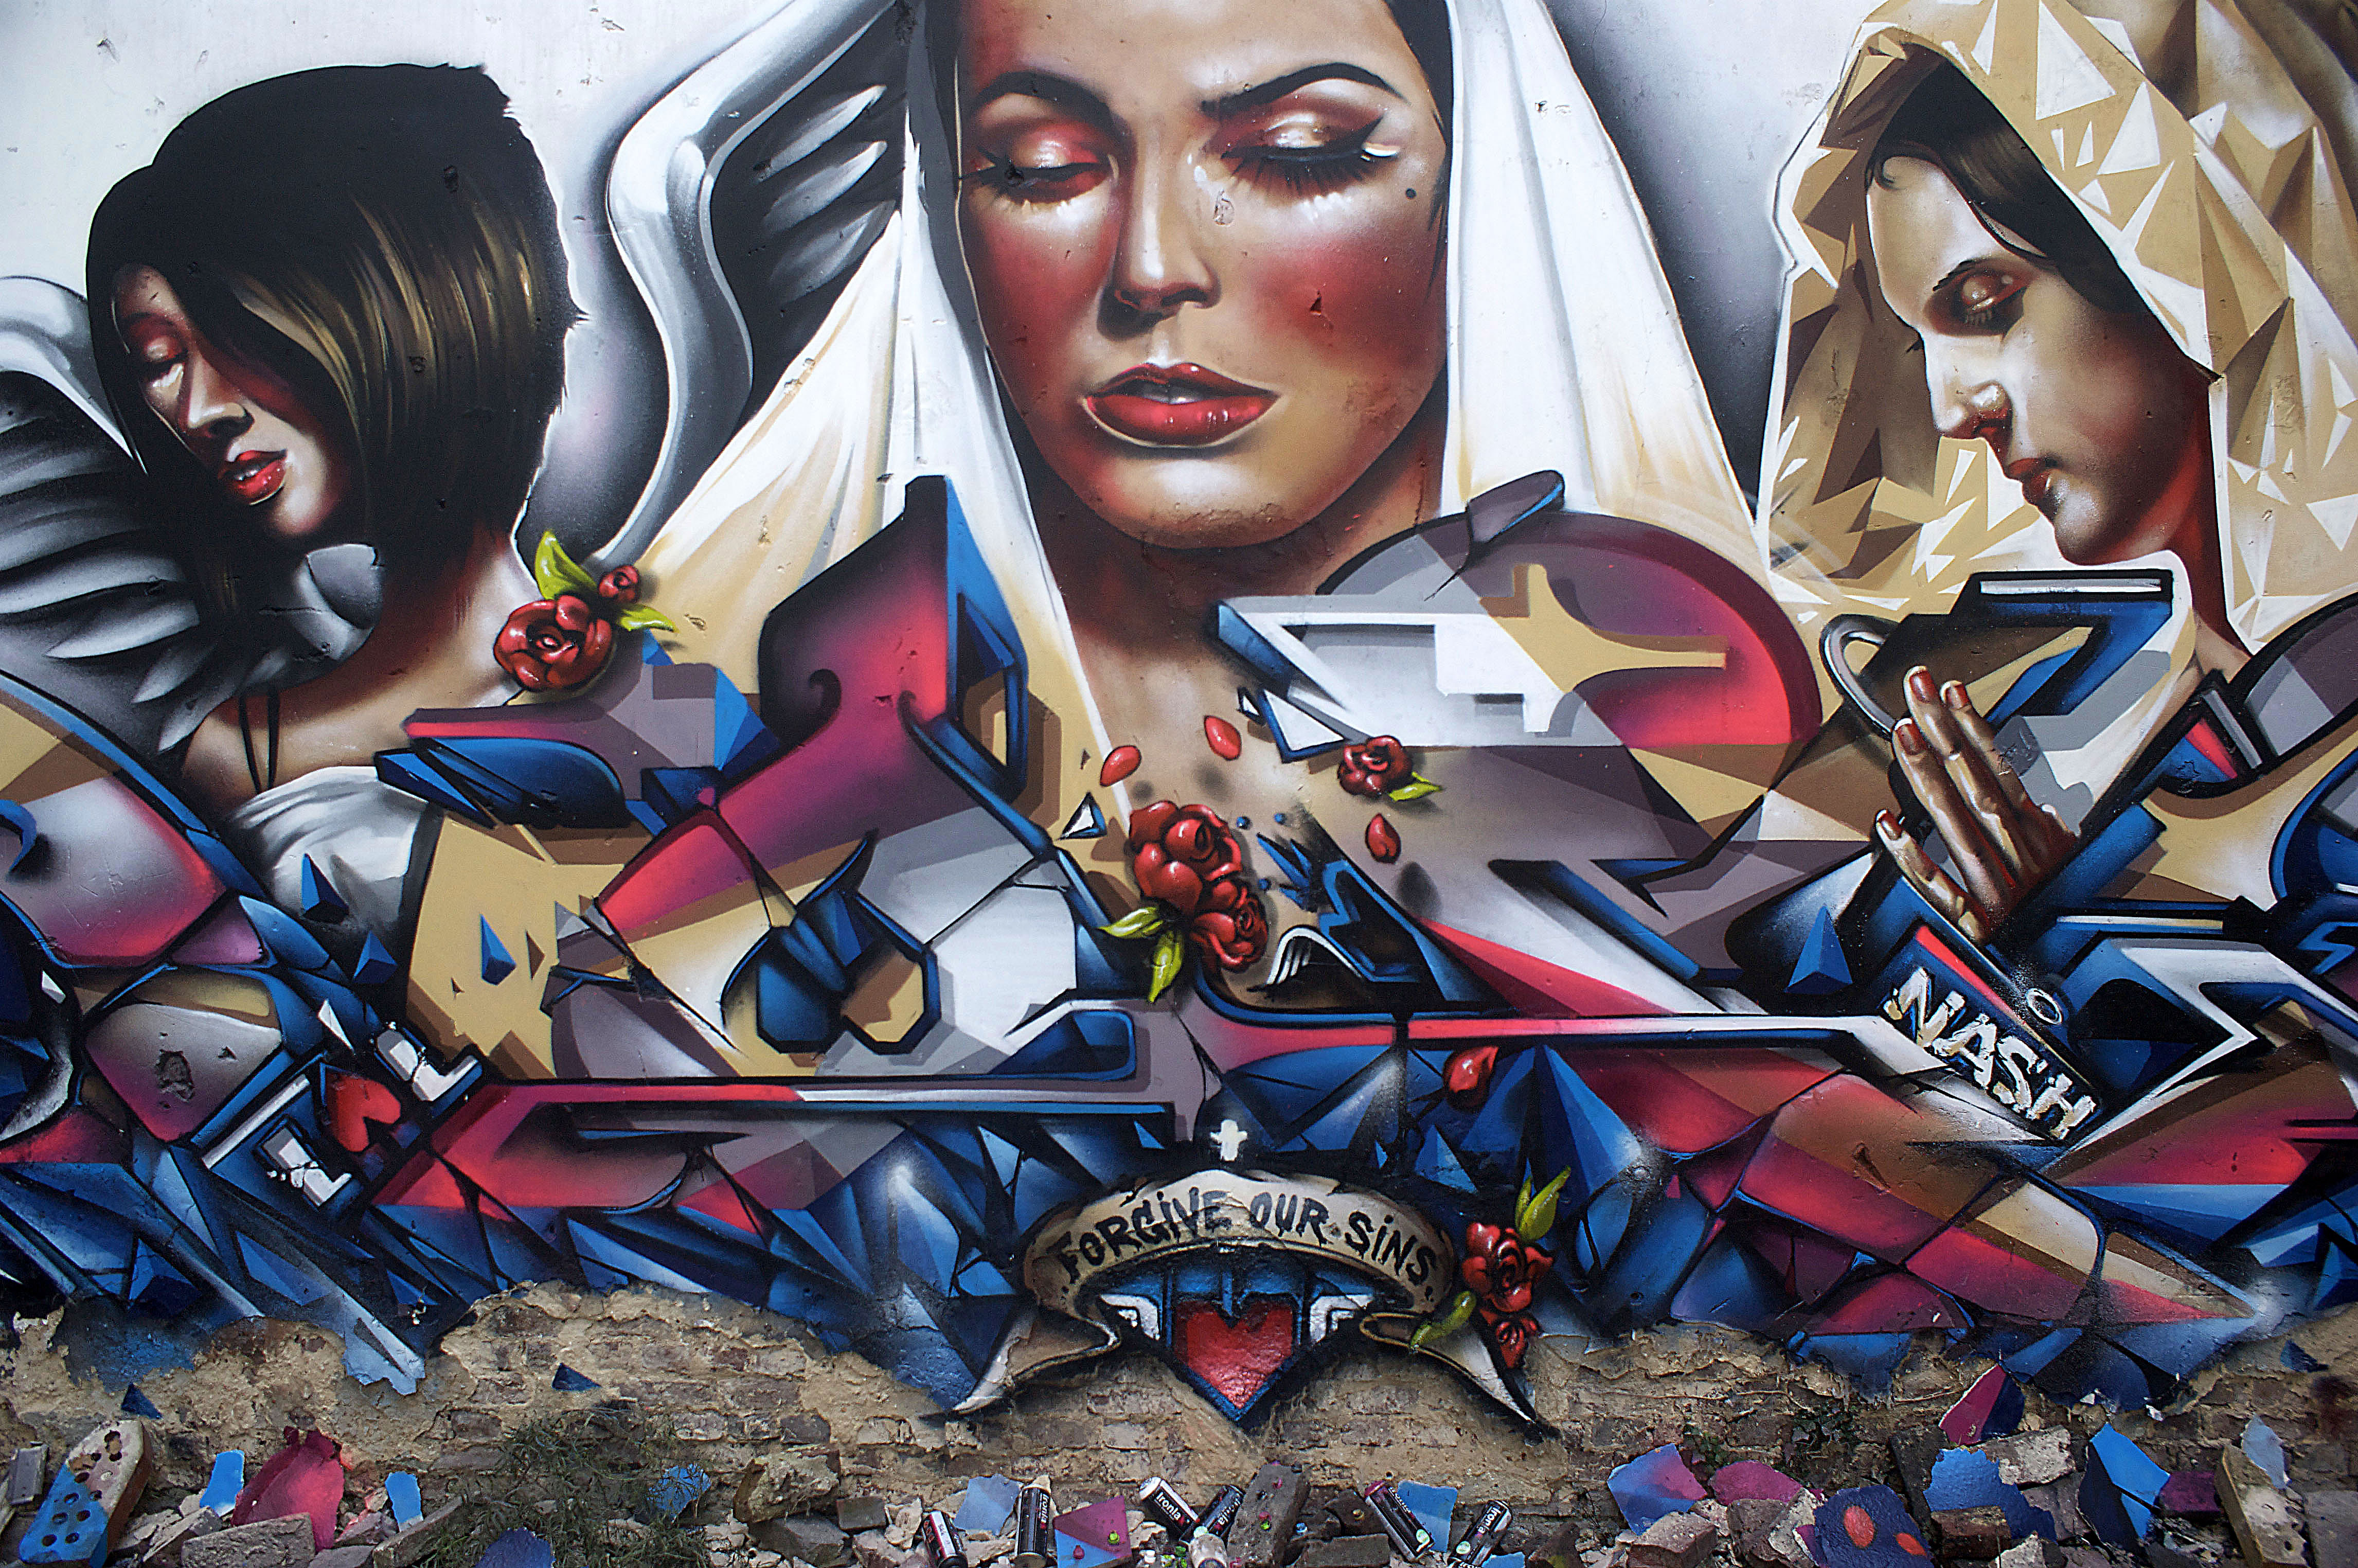 A work by Does - Munstergeleen the netherlands mural detail 4